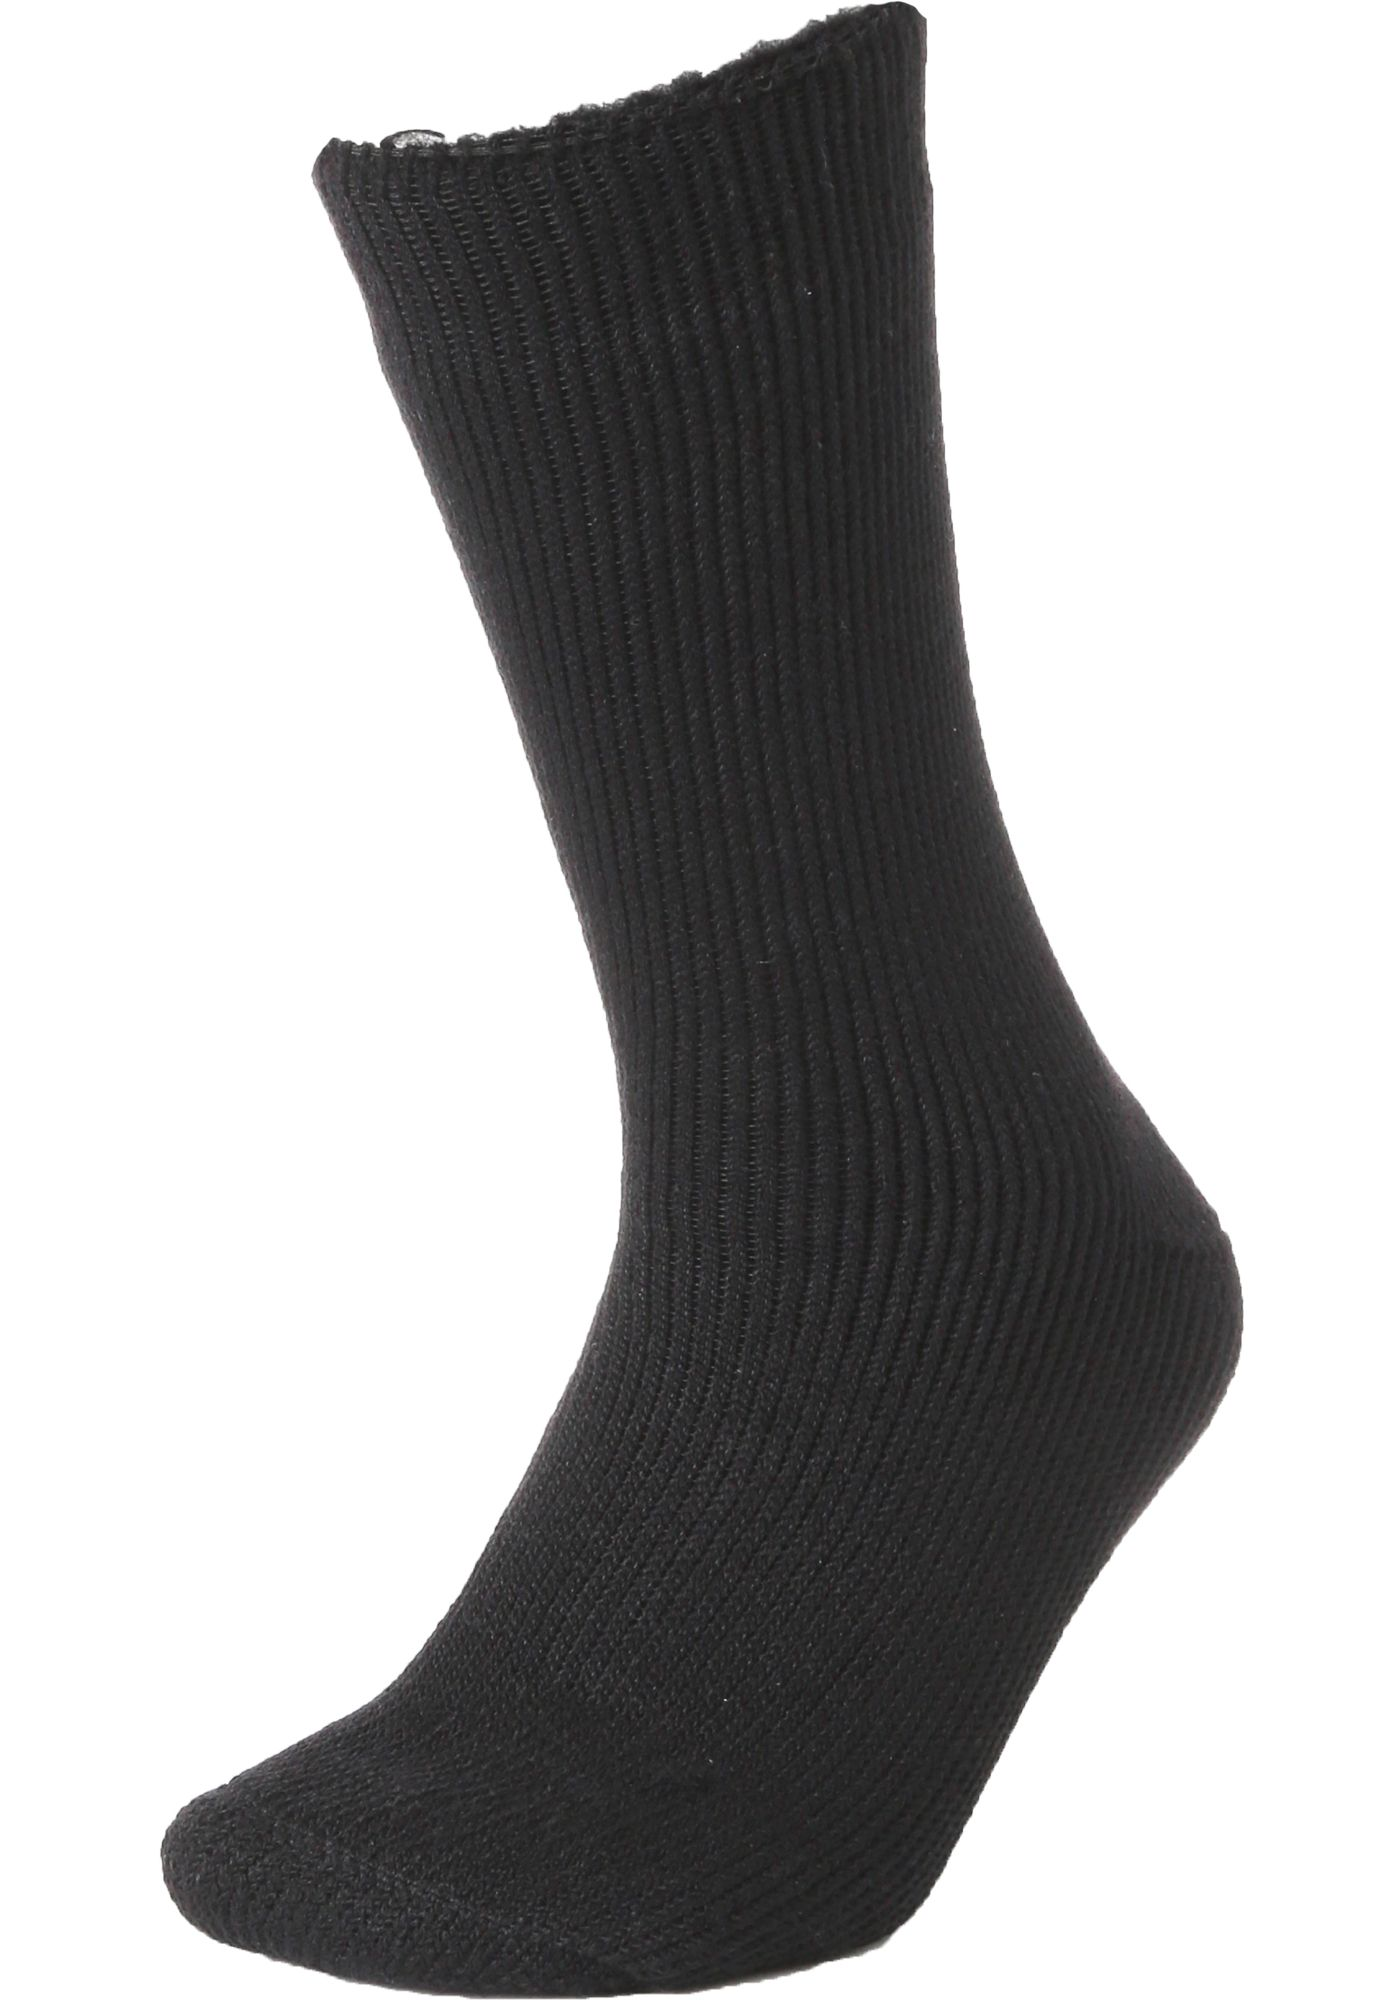 Field & Stream Heavyweight Brushed Thermal Over The Calf Socks